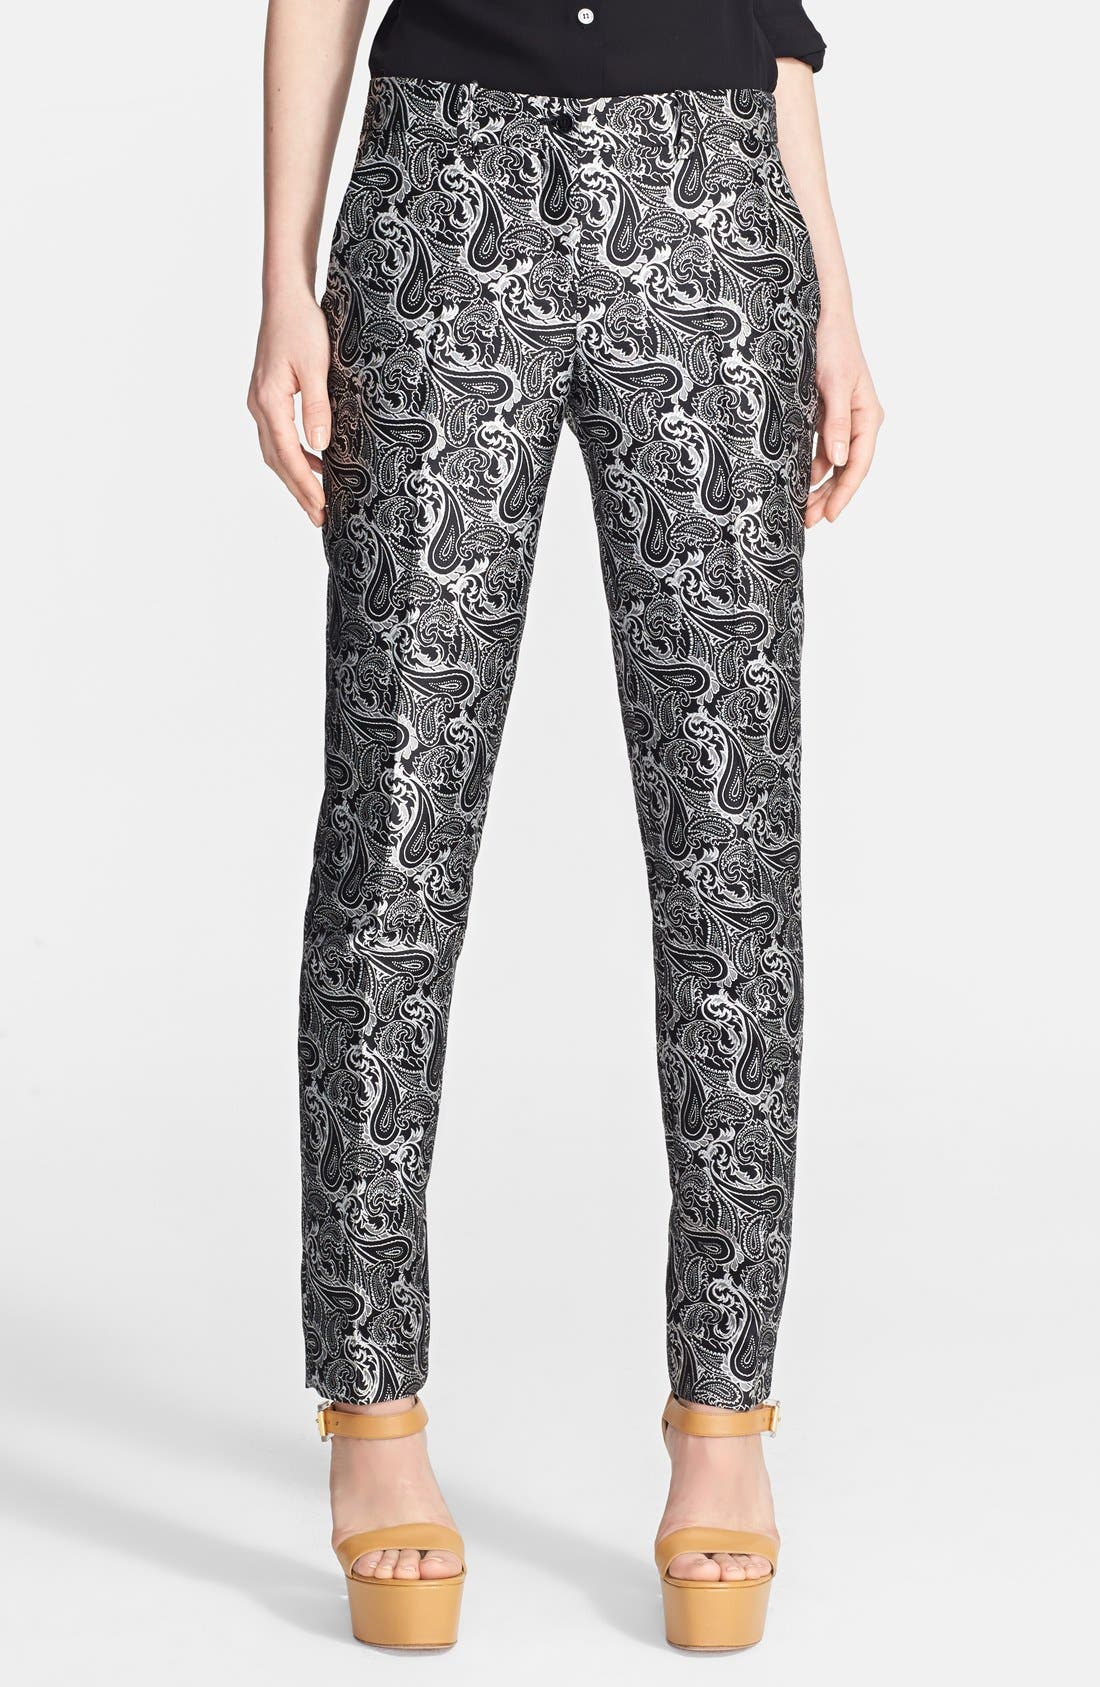 Alternate Image 1 Selected - Michael Kors 'Samantha' Skinny Paisley Pants